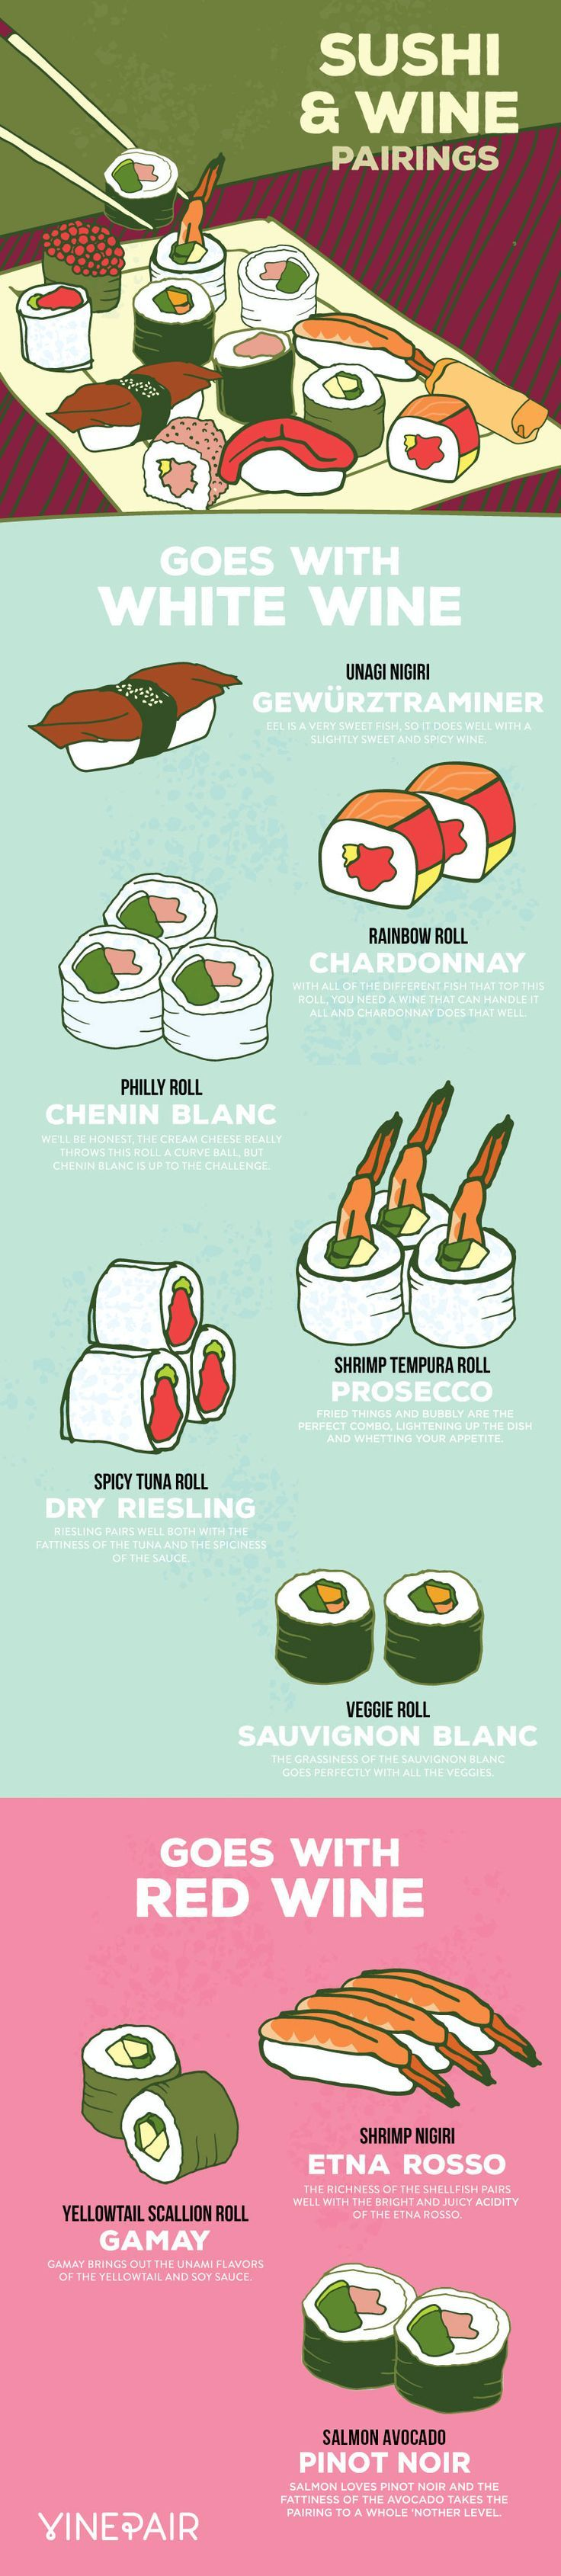 The best way to pair your wine and sushi is to check out this infographic